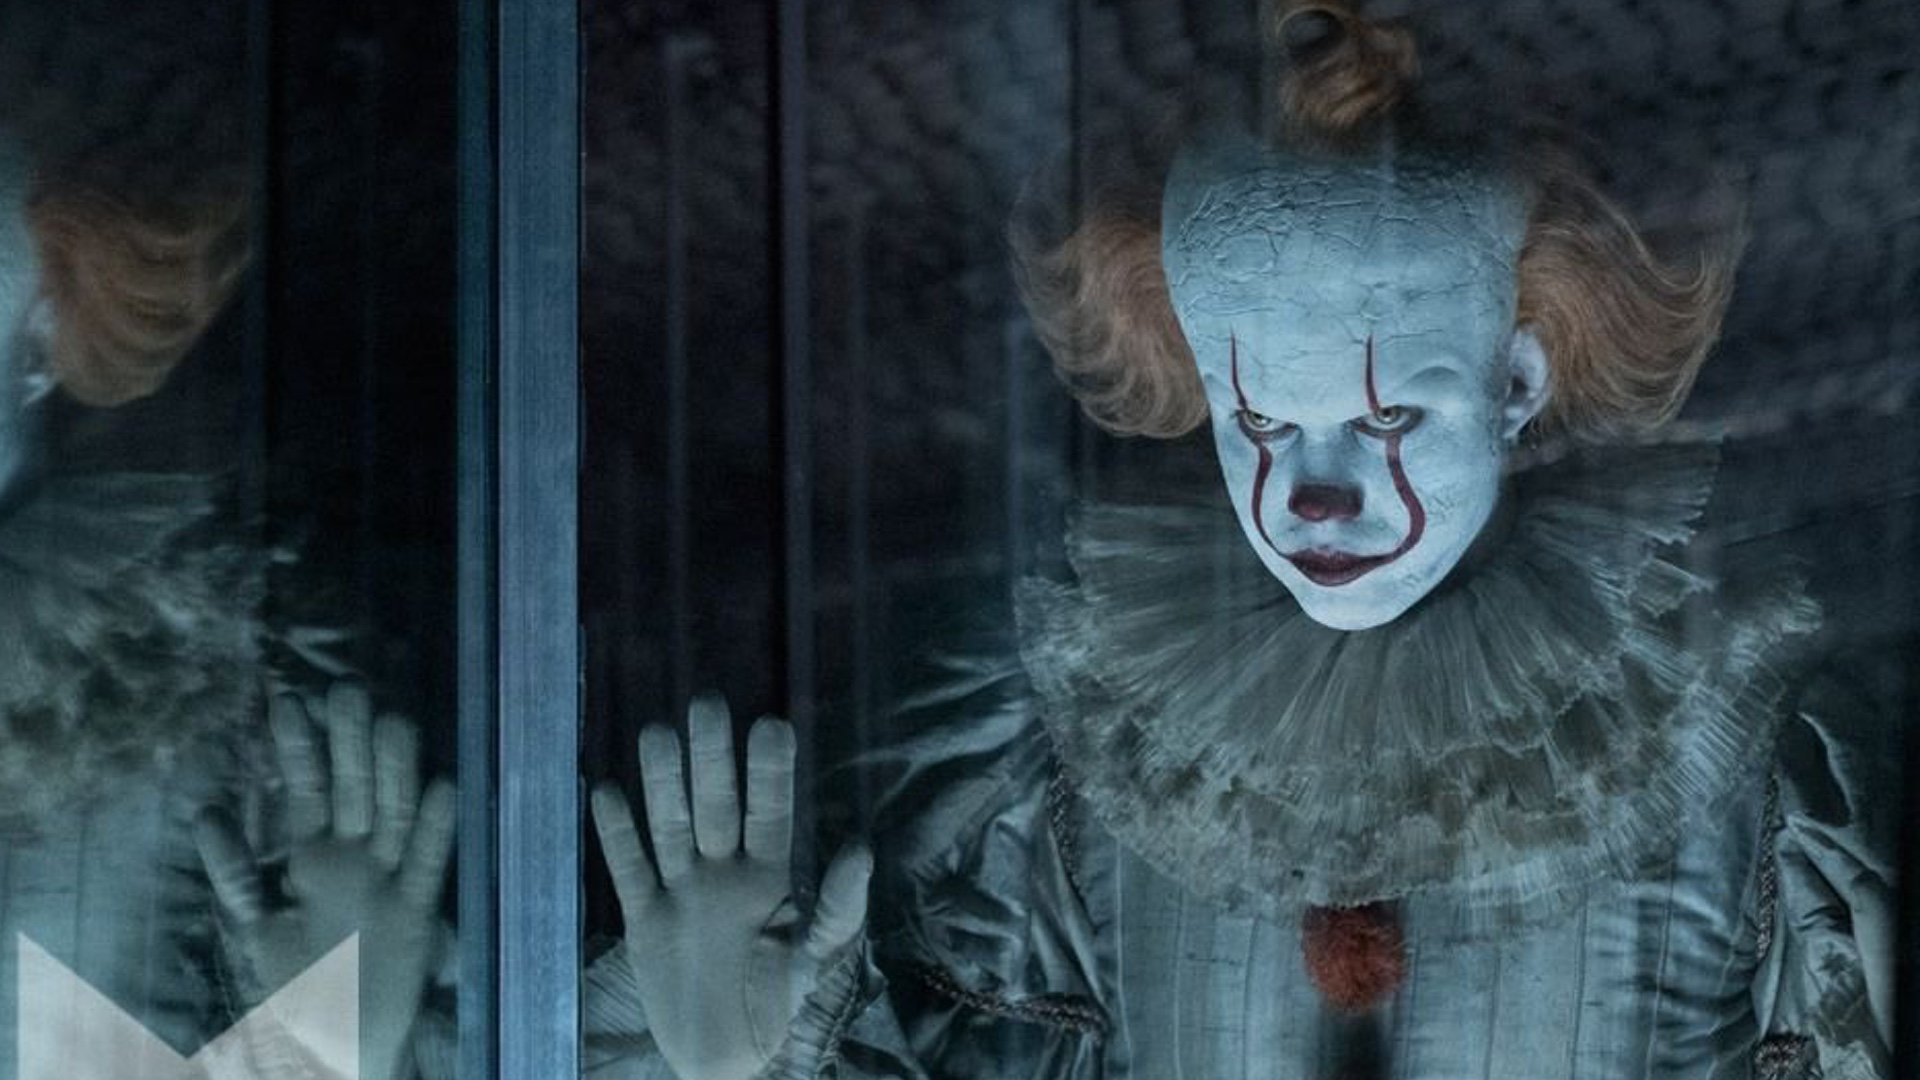 Buena, pero no grandiosa: Estas son las primeras reacciones de It: Chapter Two